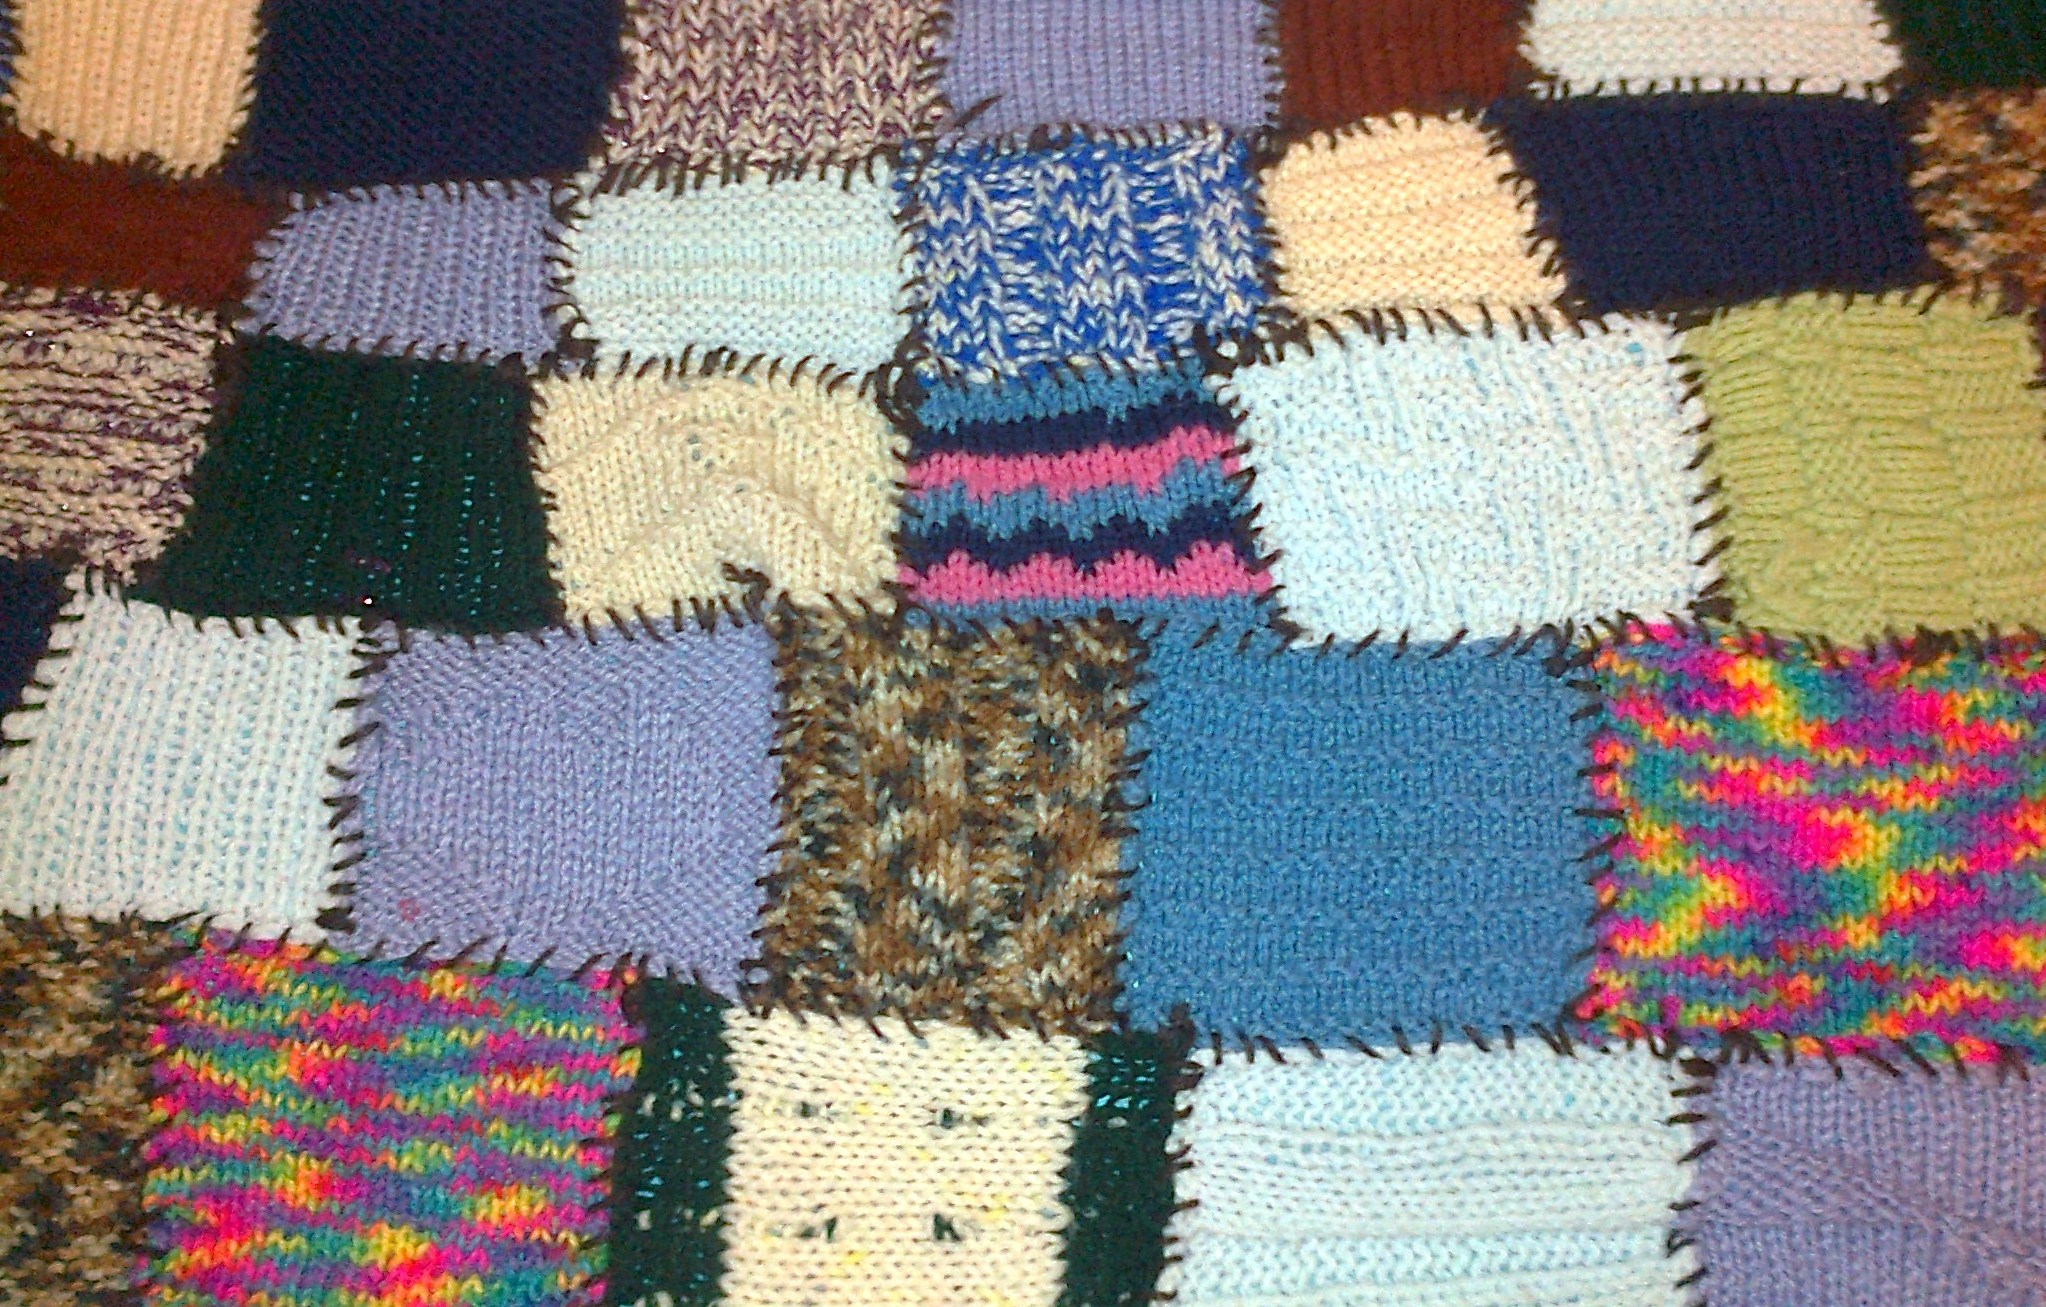 Blanket made by sewing together little knitted squares